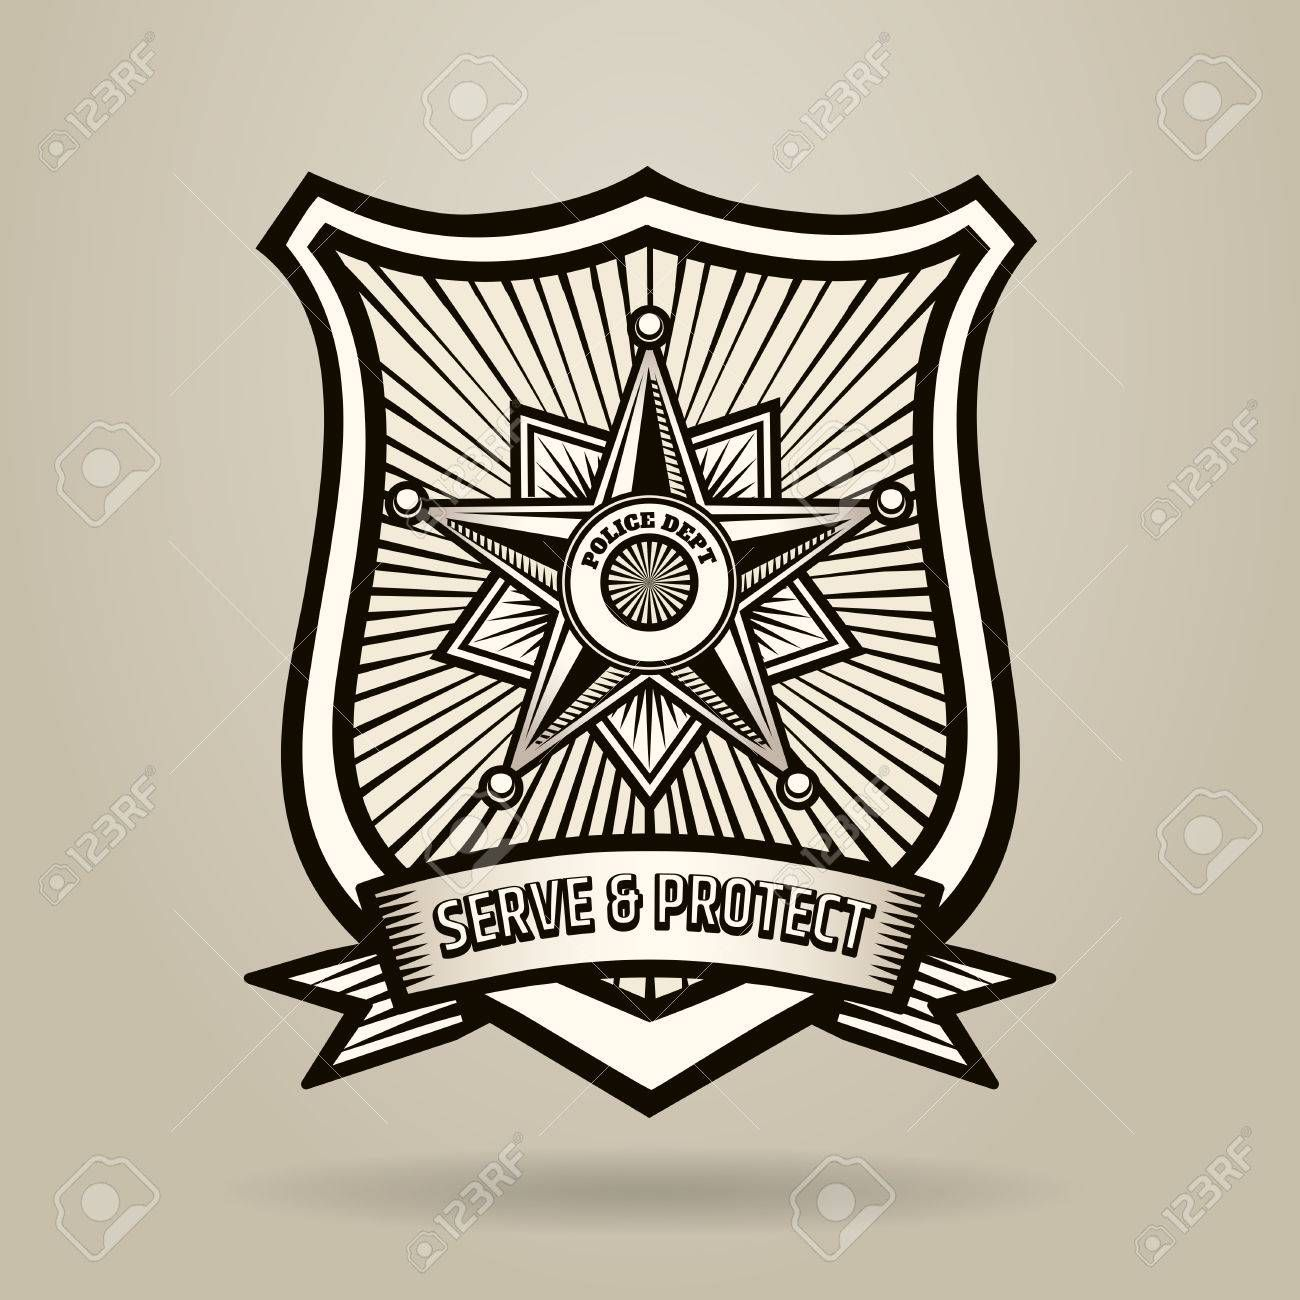 Police Badge with wording Serve and Protect. Illustration